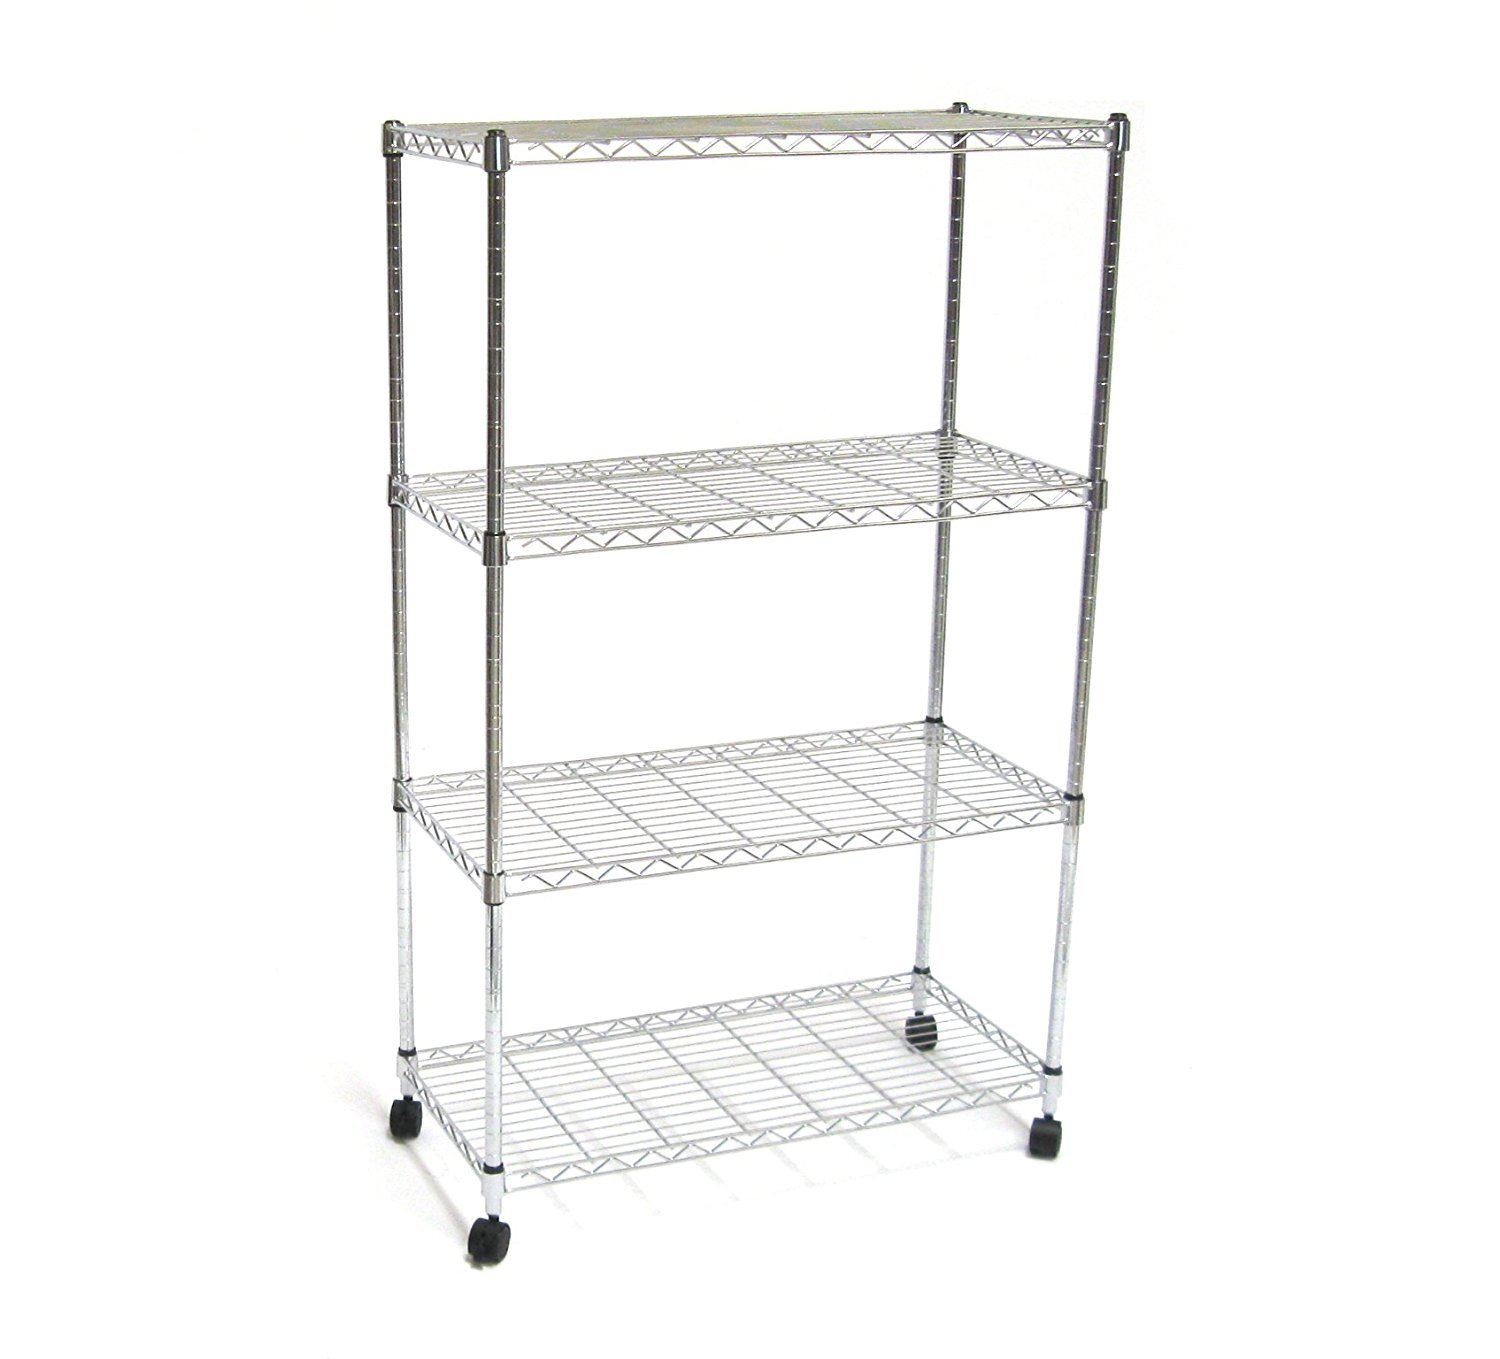 "Seville Classics SHE14304ZB 4-Tier Steel Wire Shelving with Wheels, 30"" W x 14"" D x 48"" H Chrome"